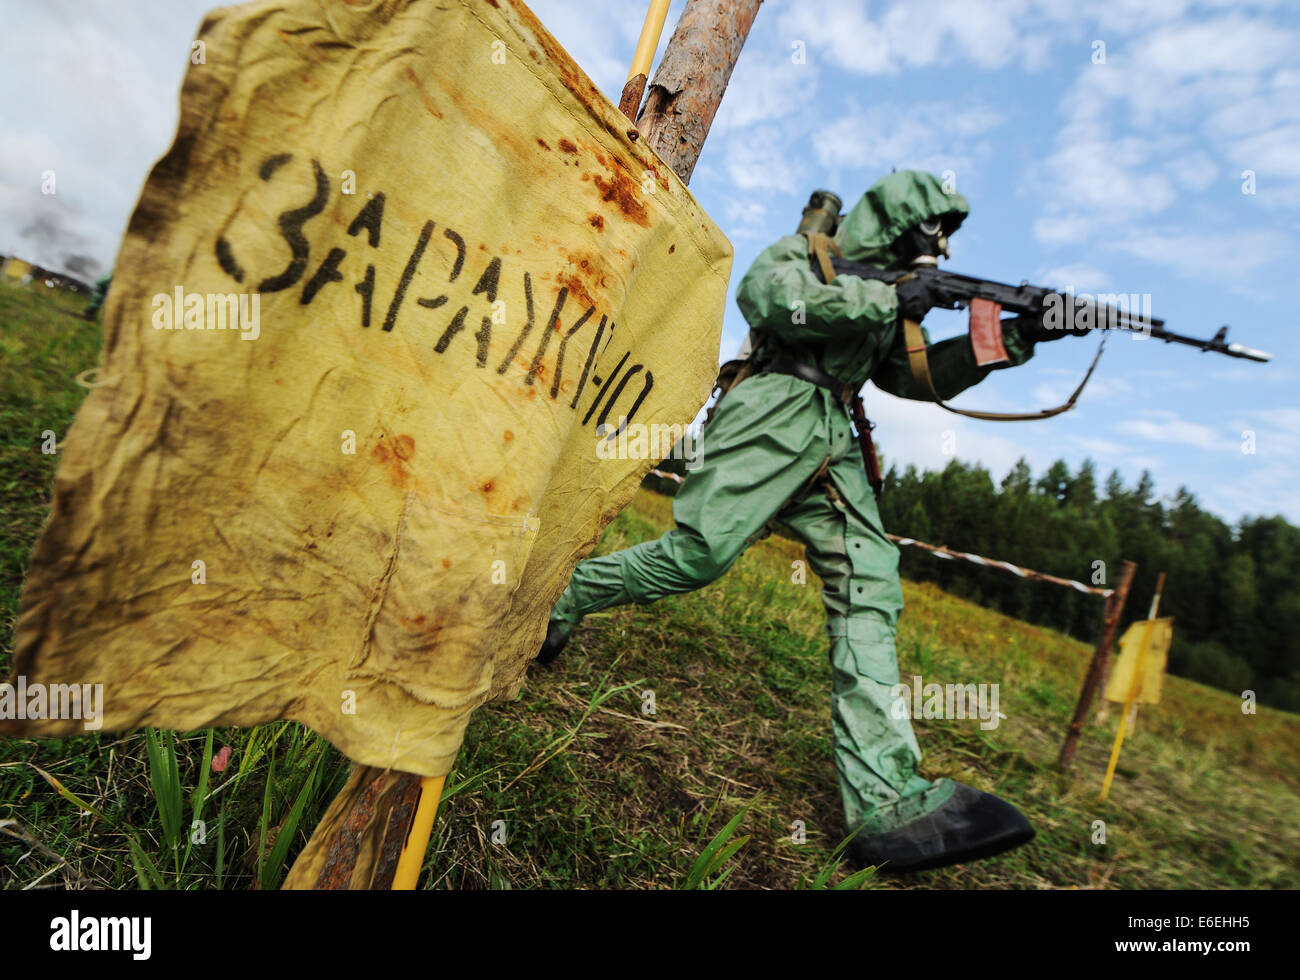 Sverdlovsk Region, Russia. 21st Aug, 2014. A member of Russia's Central Military District NBC defence seen in - Stock Image